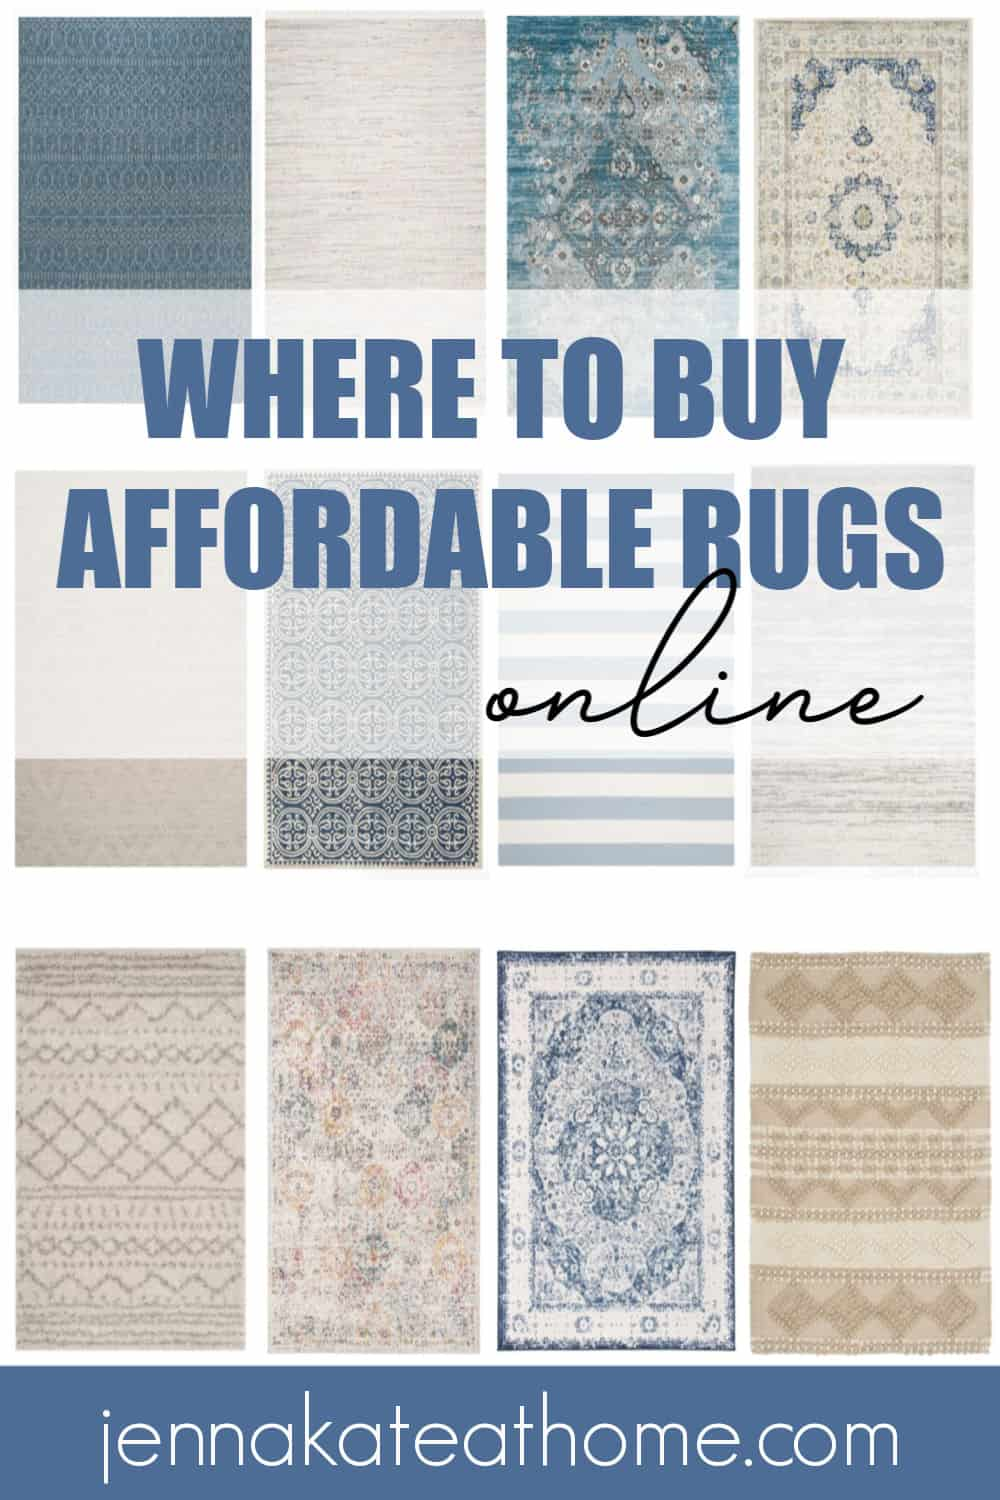 Here are some of the best places to buy affordable rugs online!